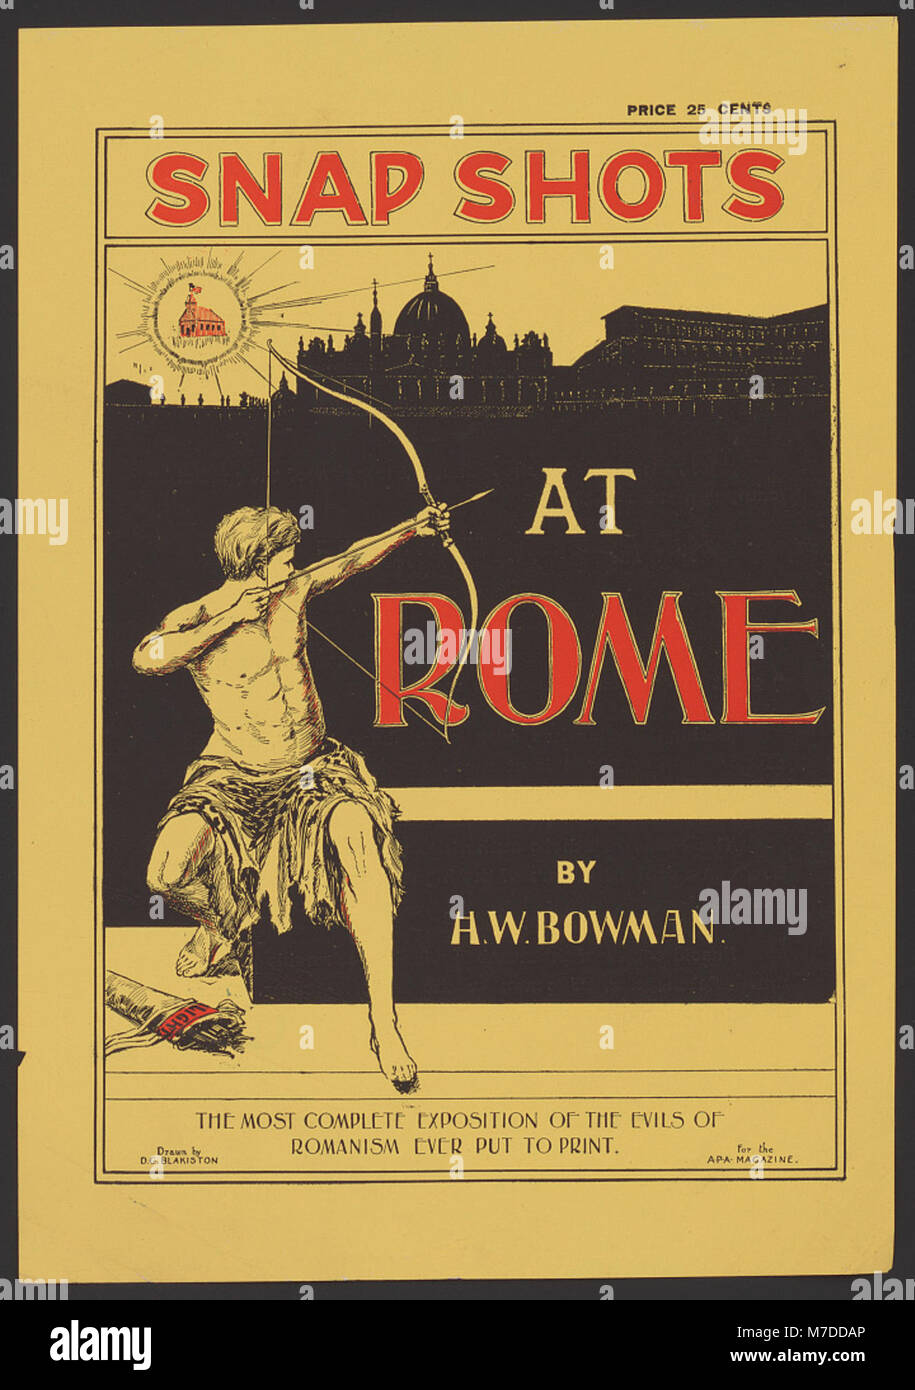 Snap shots at Rome by H.W. Bowman. LCCN2014647816 - Stock Image